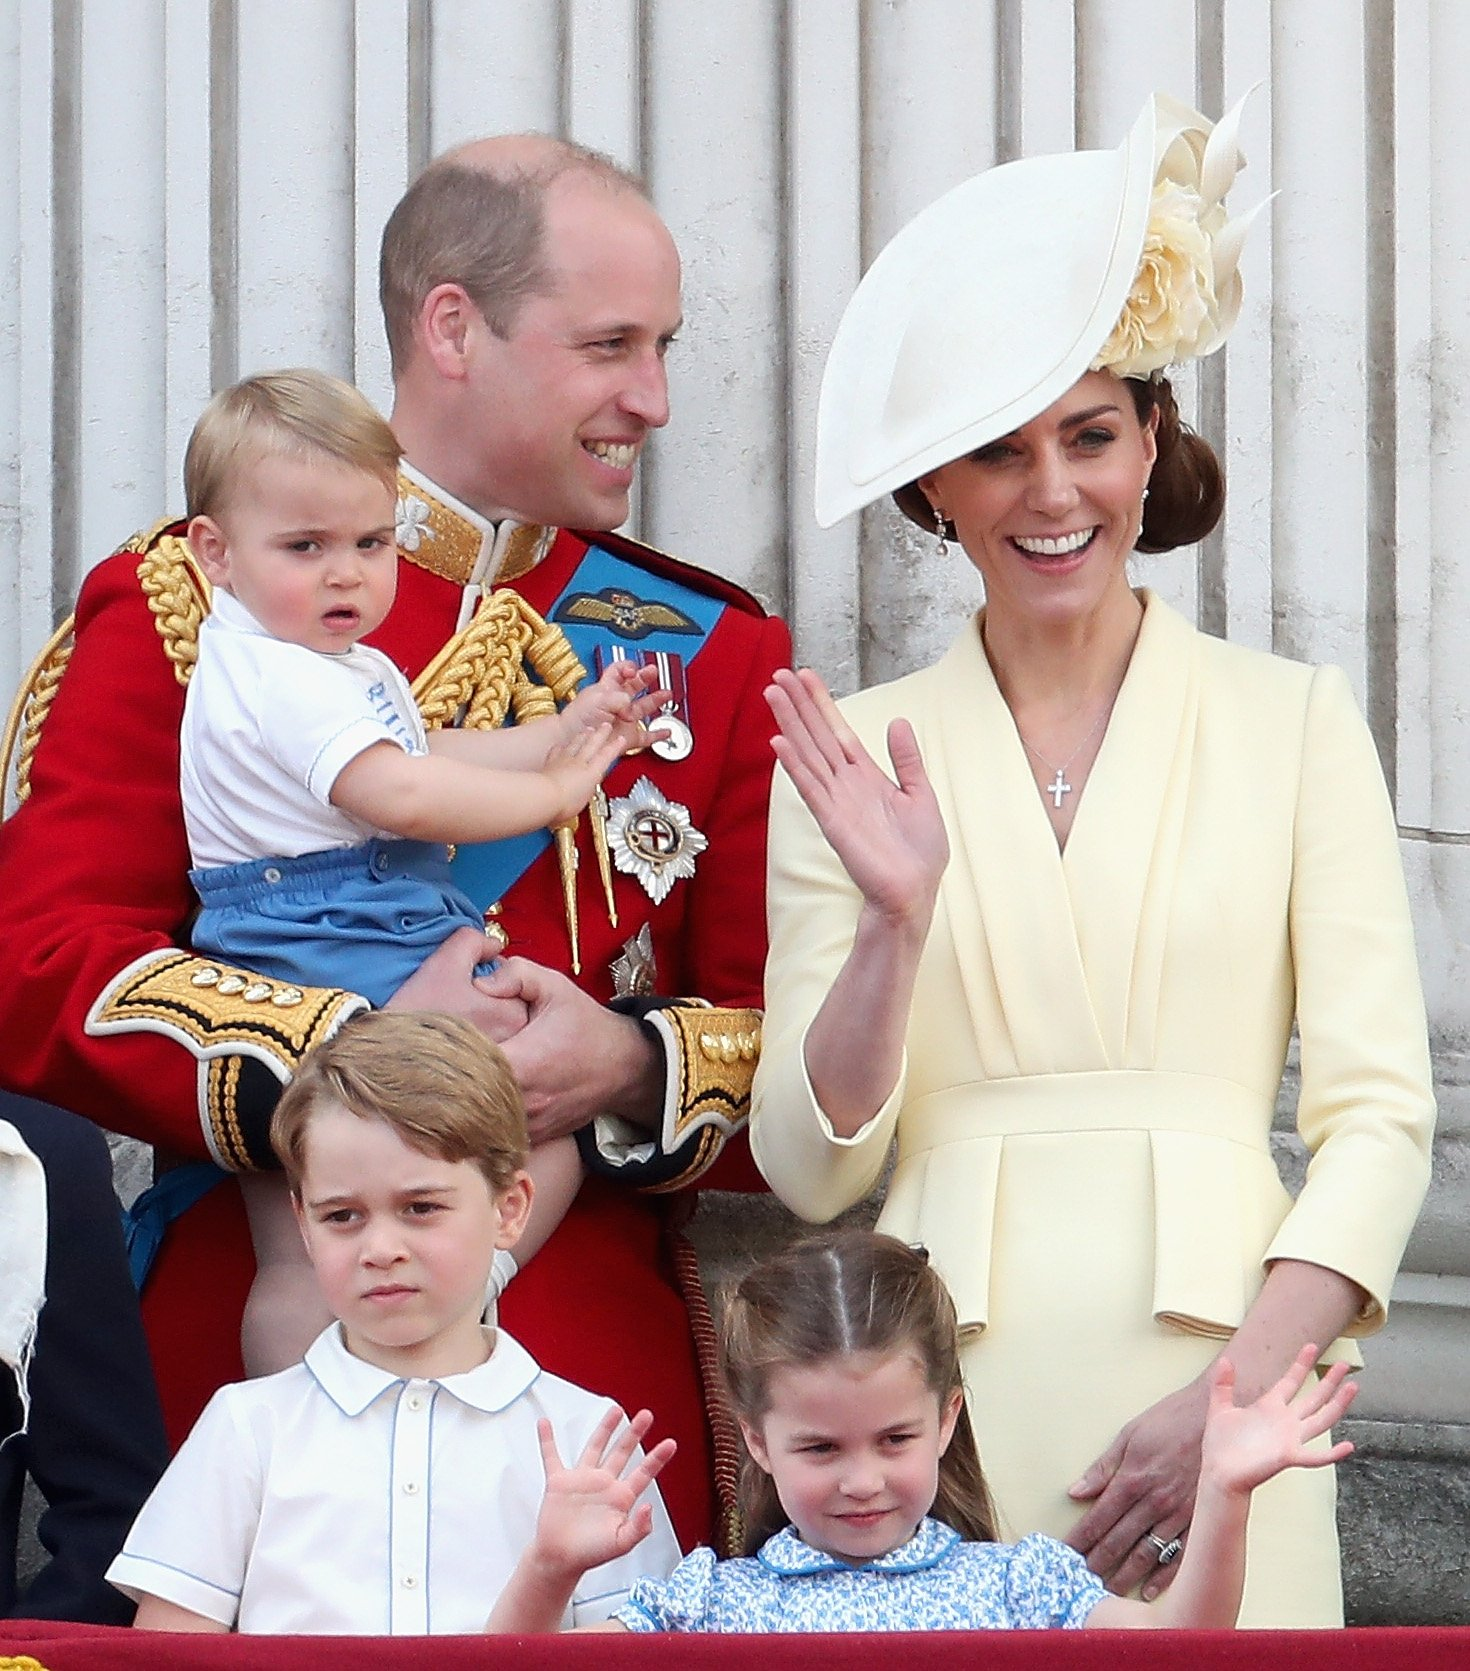 Prince William, Prince Louis, Prince George, Princess Charlotte and Kate Middleton pictured at Trooping the Colour in honor of the Queen's Birthday, 2019, London, England. | Photo: Getty Images